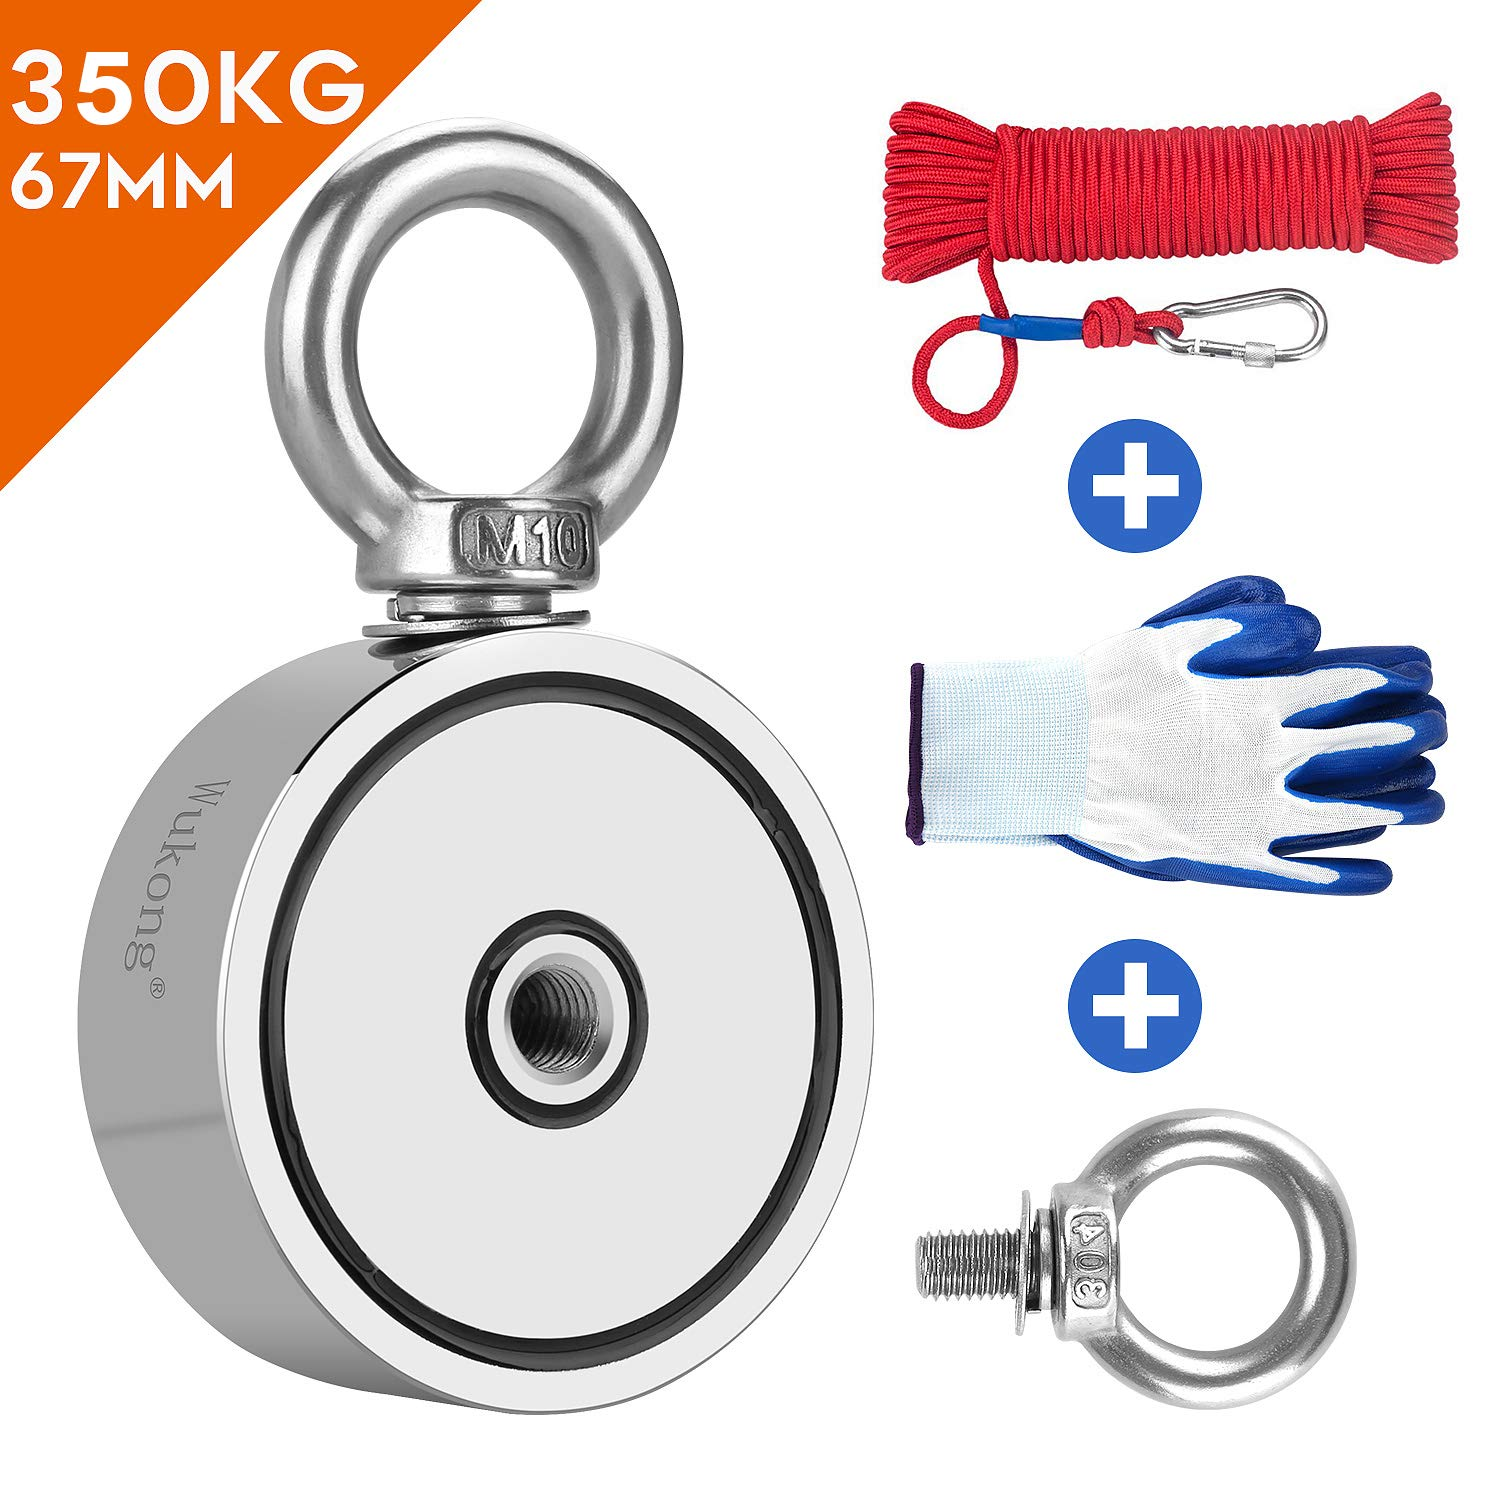 Wukong Double Sided Magnet Fishing,Diameter 67mm,Vertical Tension 350KG N52 Neodymium Eyebolt Magnet with 20m Rope and a Pair of Gloves